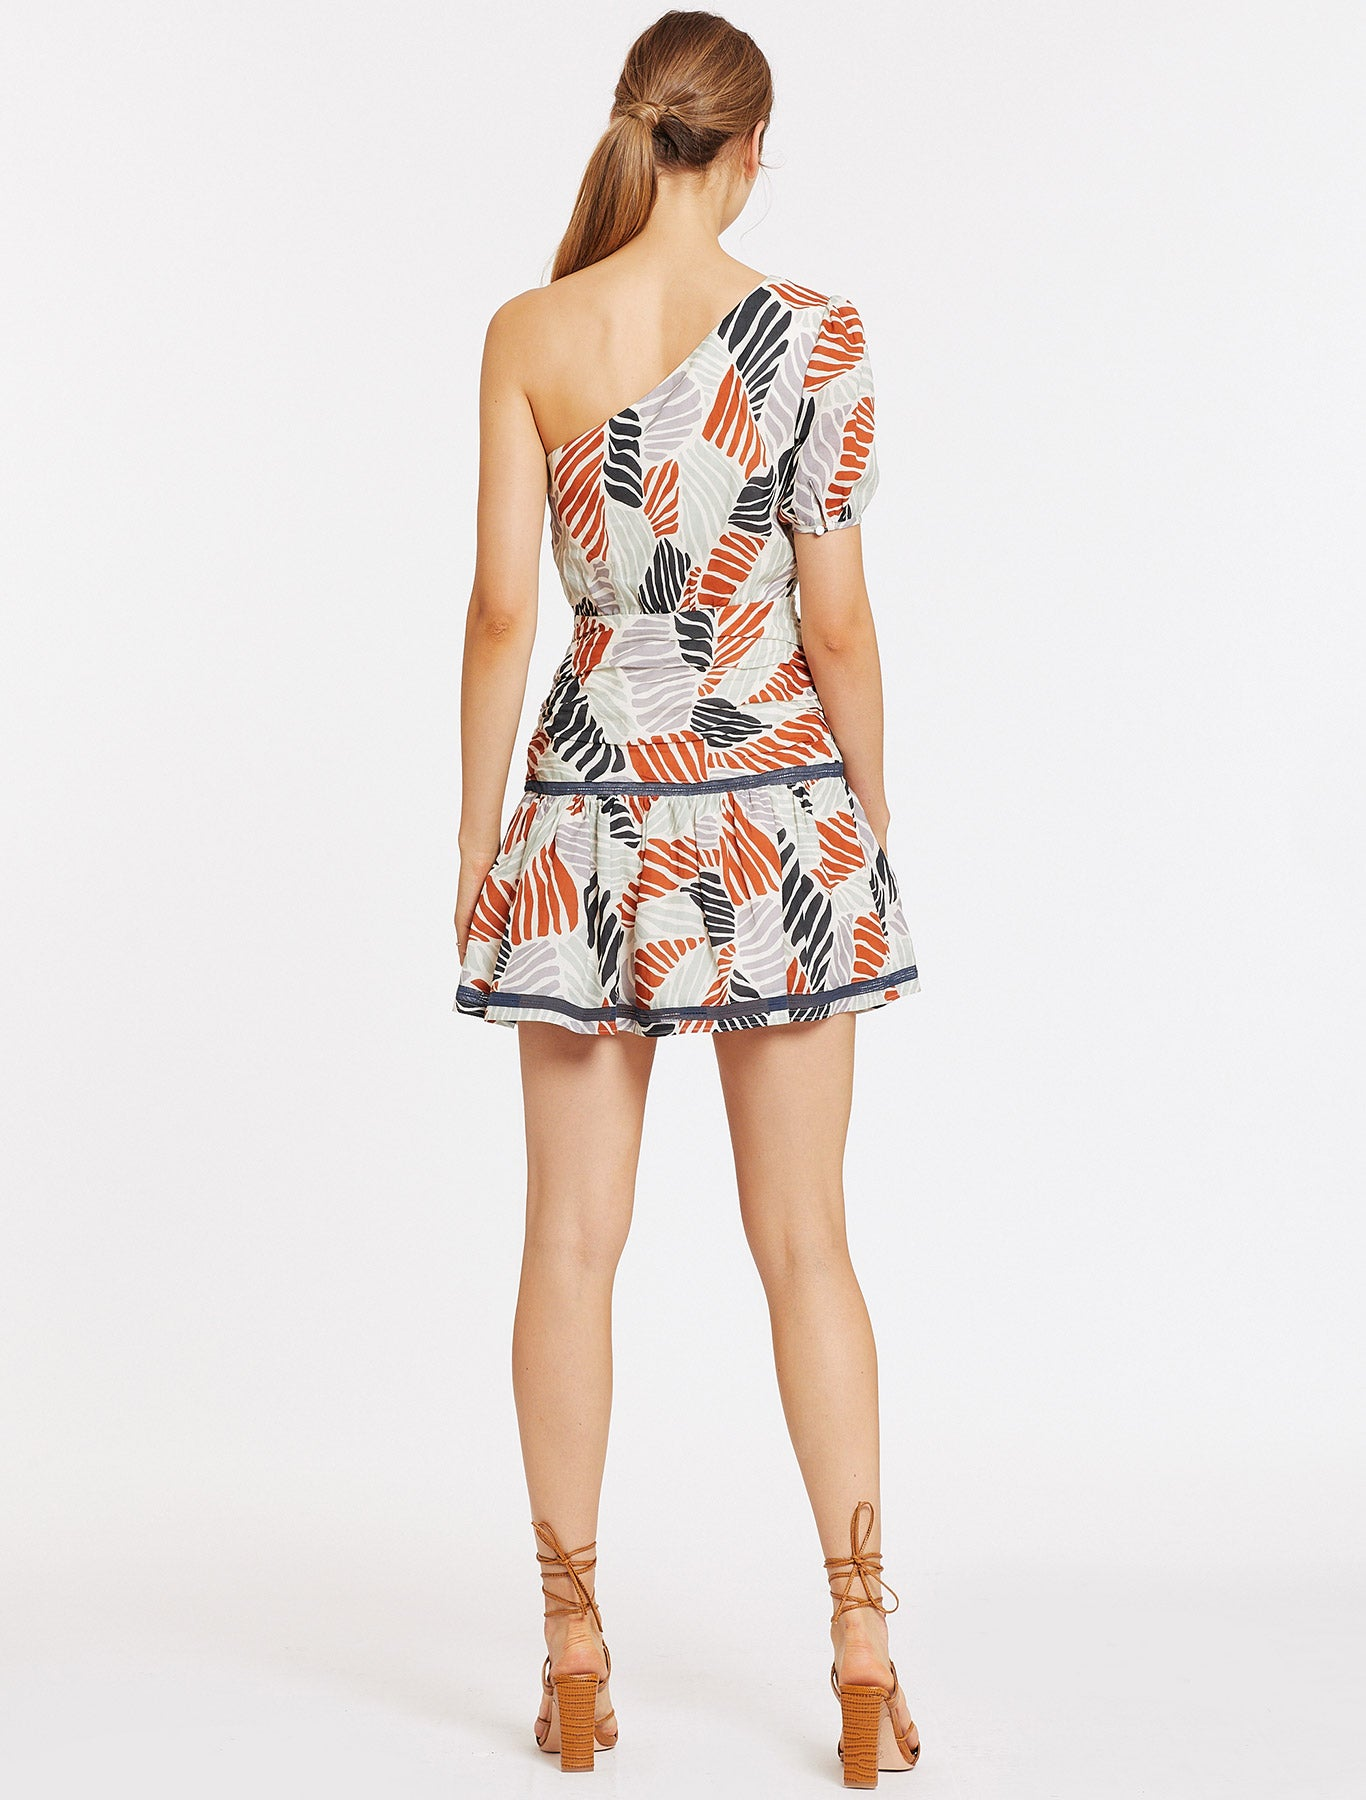 DESERT SANDS MINI DRESS